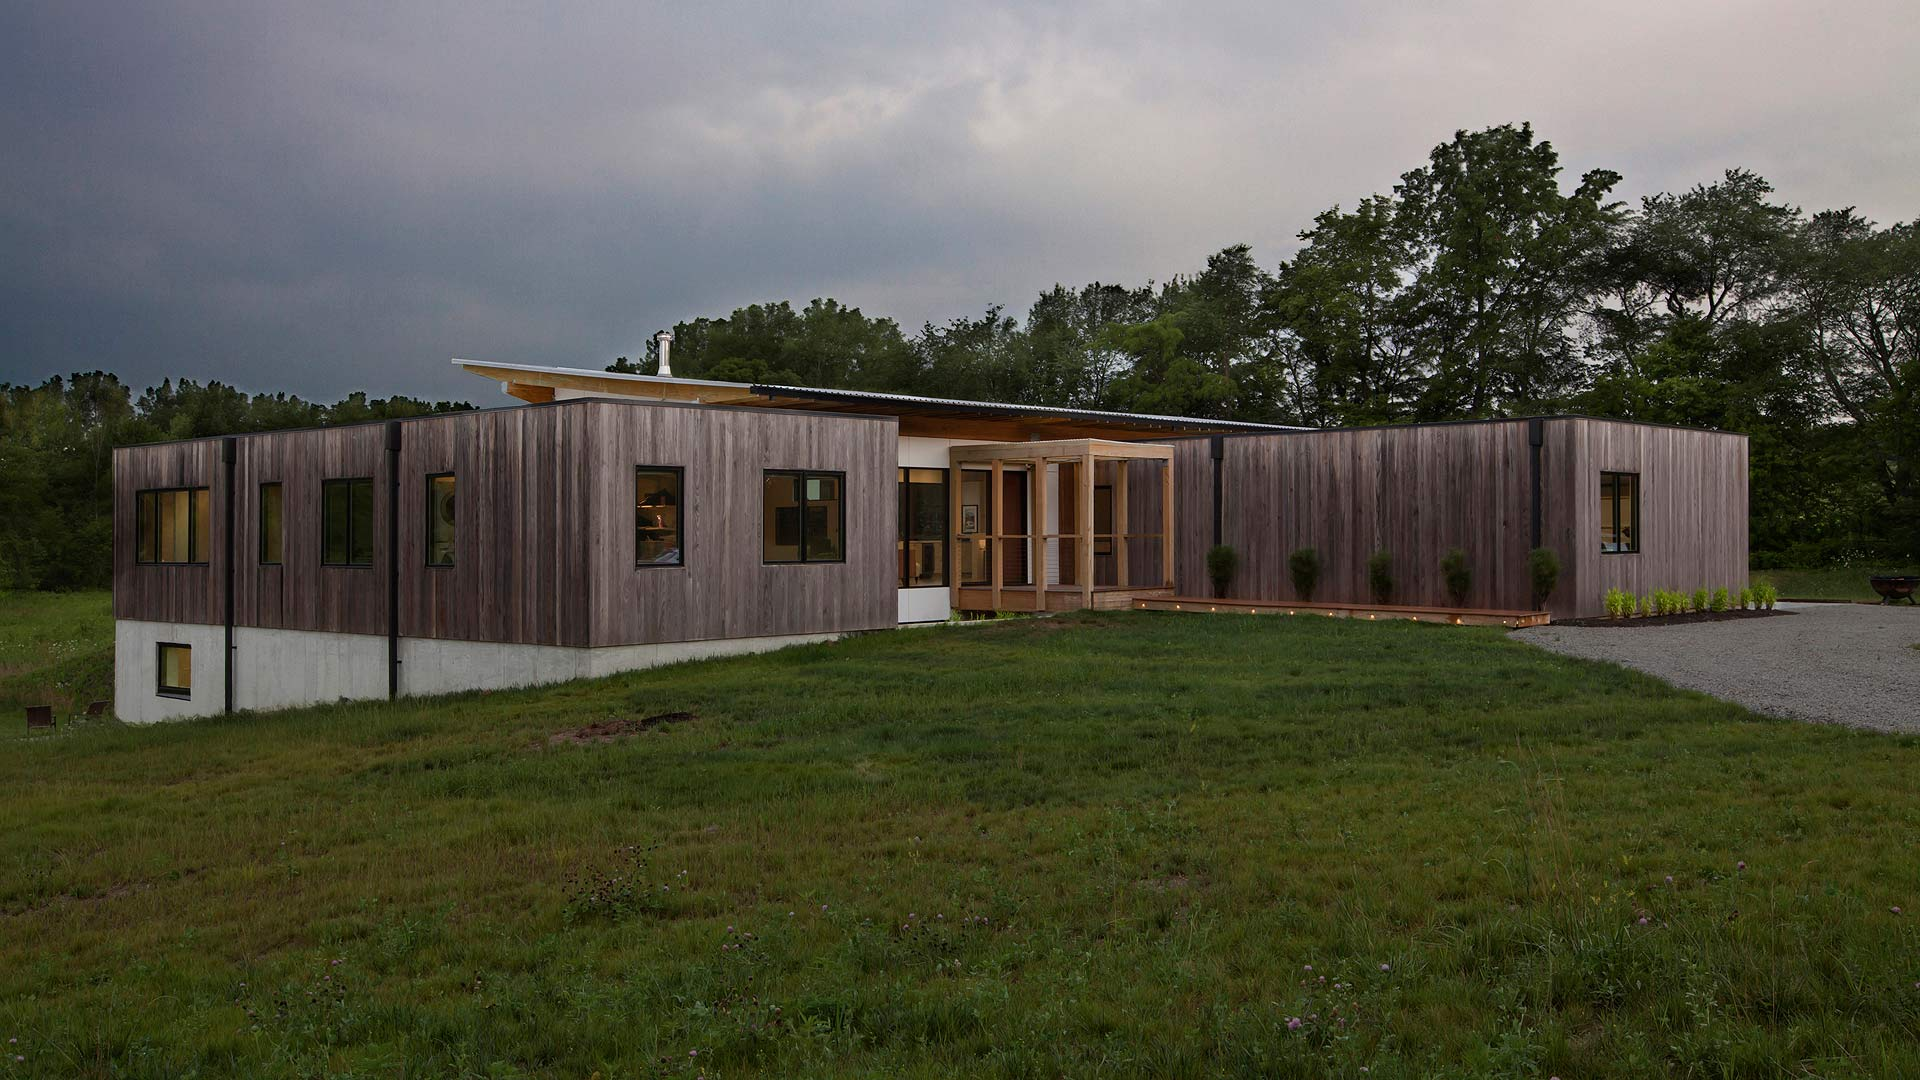 Northeast Exterior Elevation - New Modern House 1 (Copperwood) - Zionsville, IN